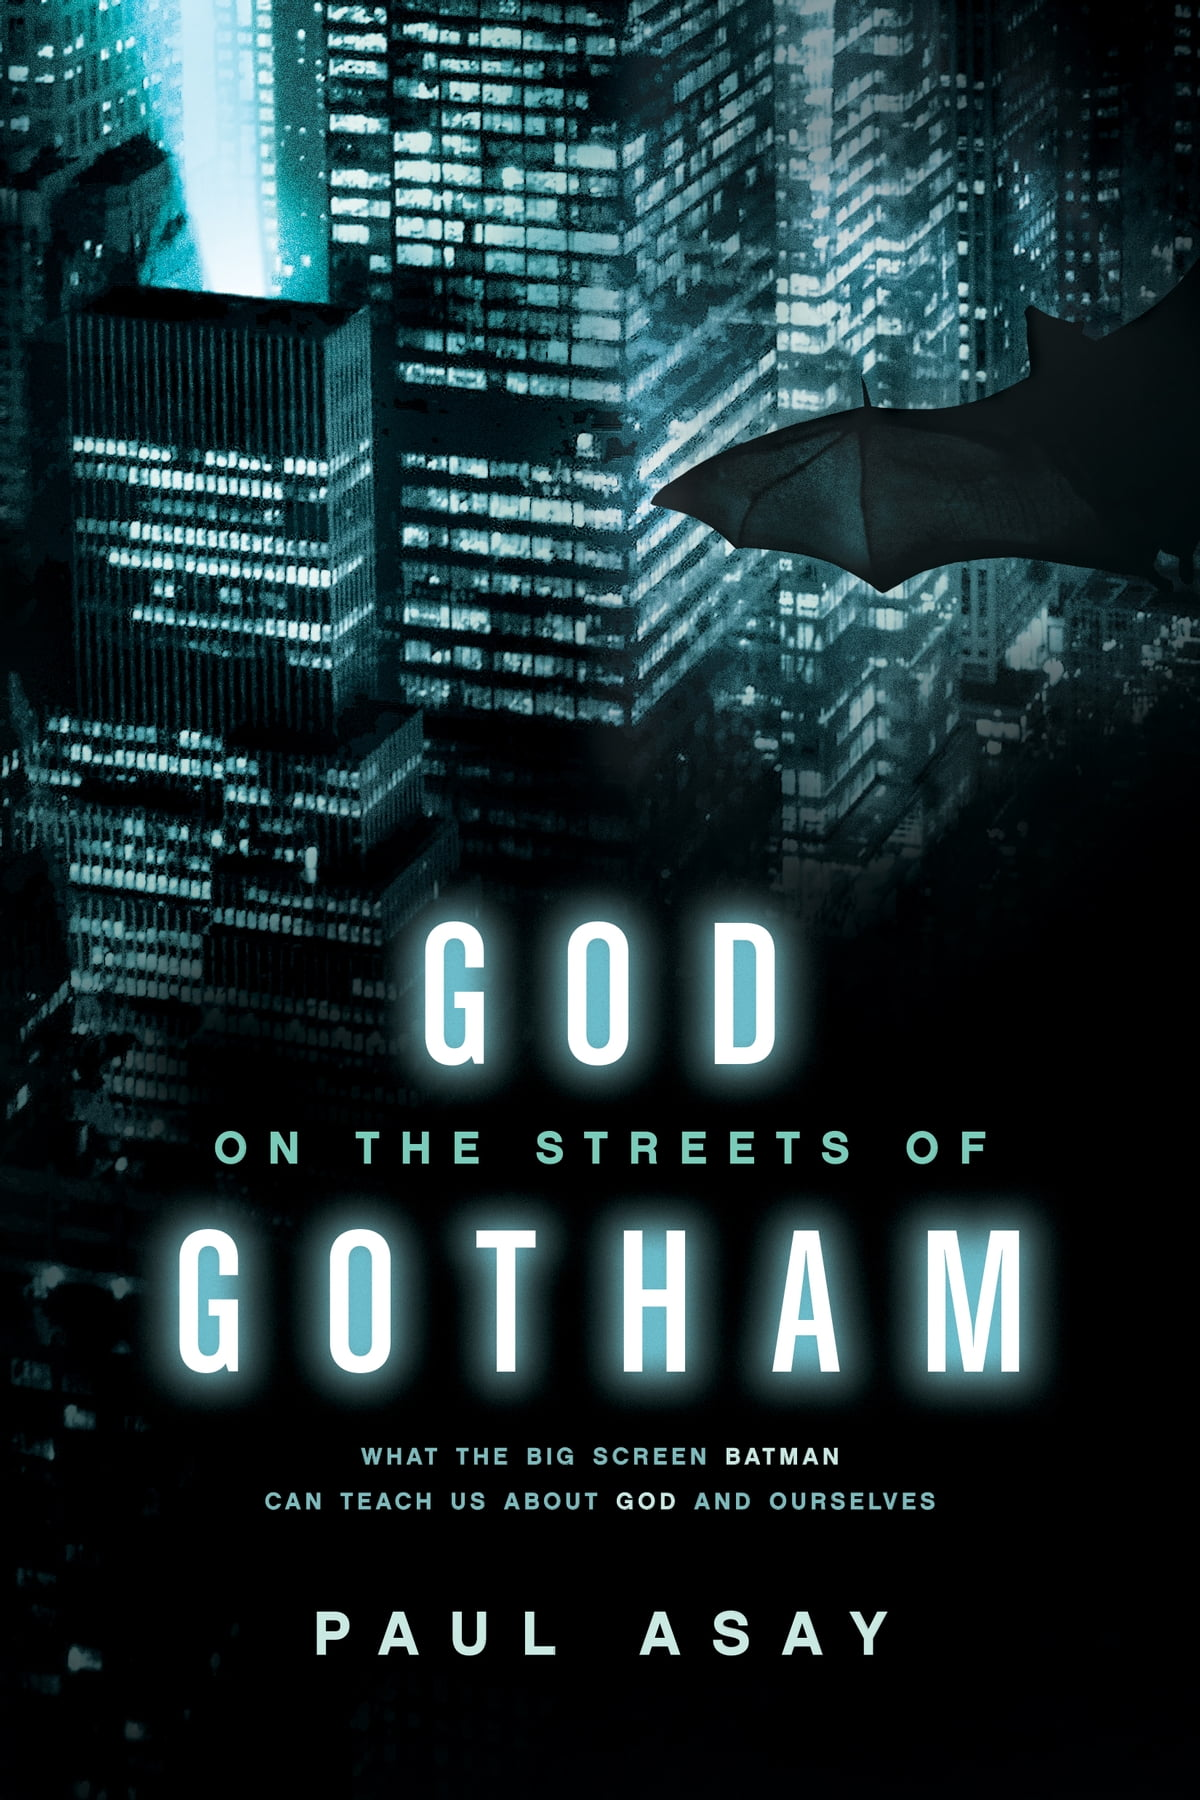 God on the Streets of Gotham: What the Big Screen Batman Can Teach Us about  God and Ourselves eBook by Paul Asay - 9781414374291 | Rakuten Kobo